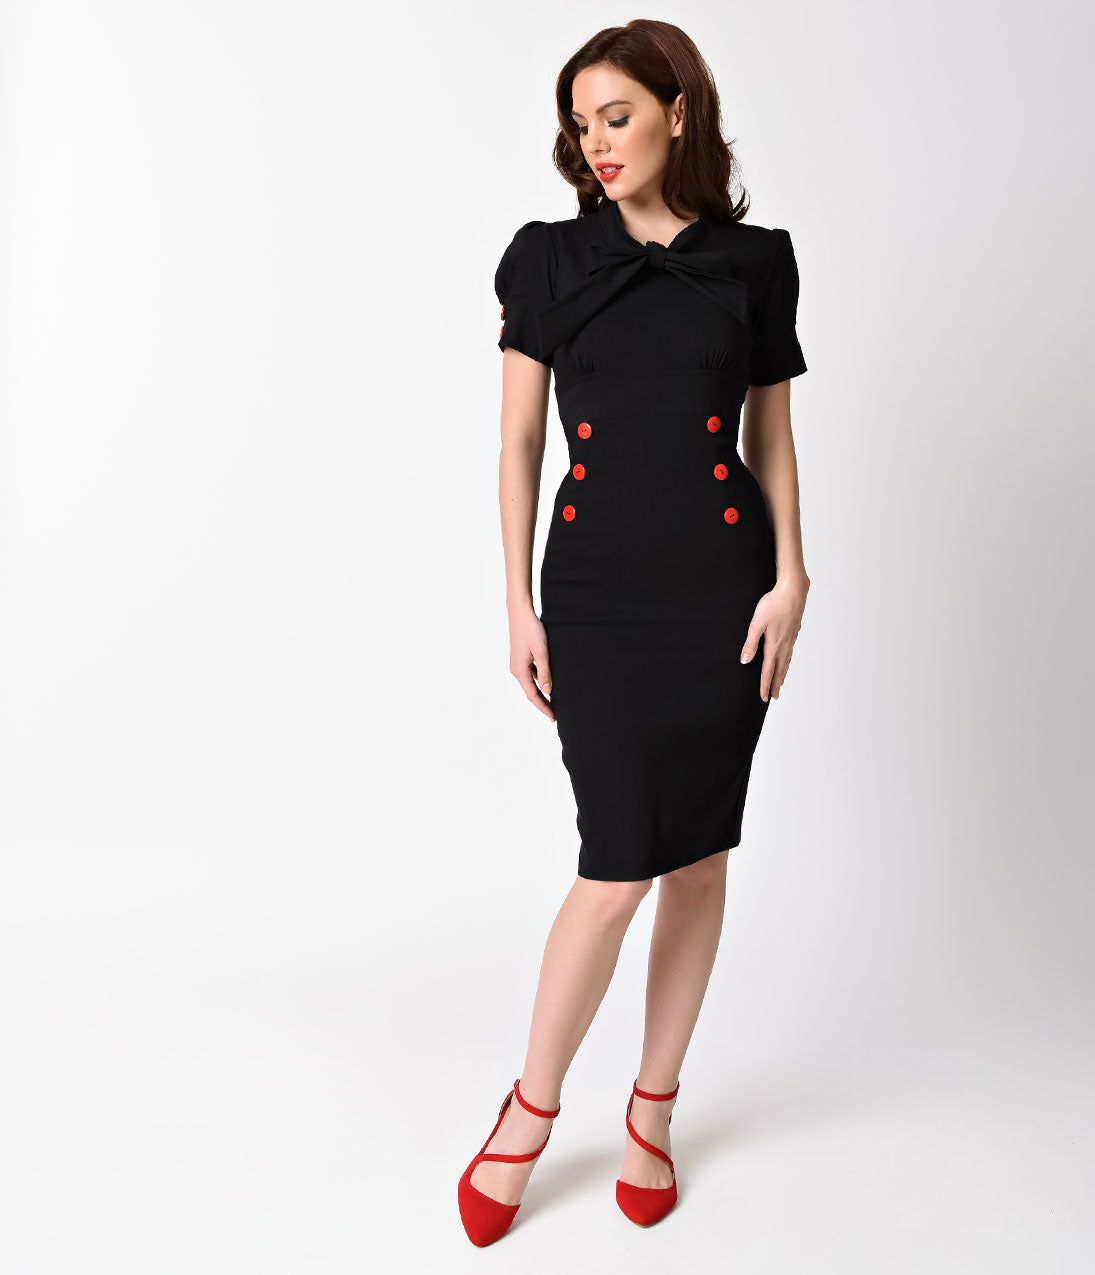 What Did Women Wear in the 1950s? 1950s Fashion Guide 1950S Style Black Stretch Short Puff Sleeve Collar Tie Wiggle Dress $62.00 AT vintagedancer.com